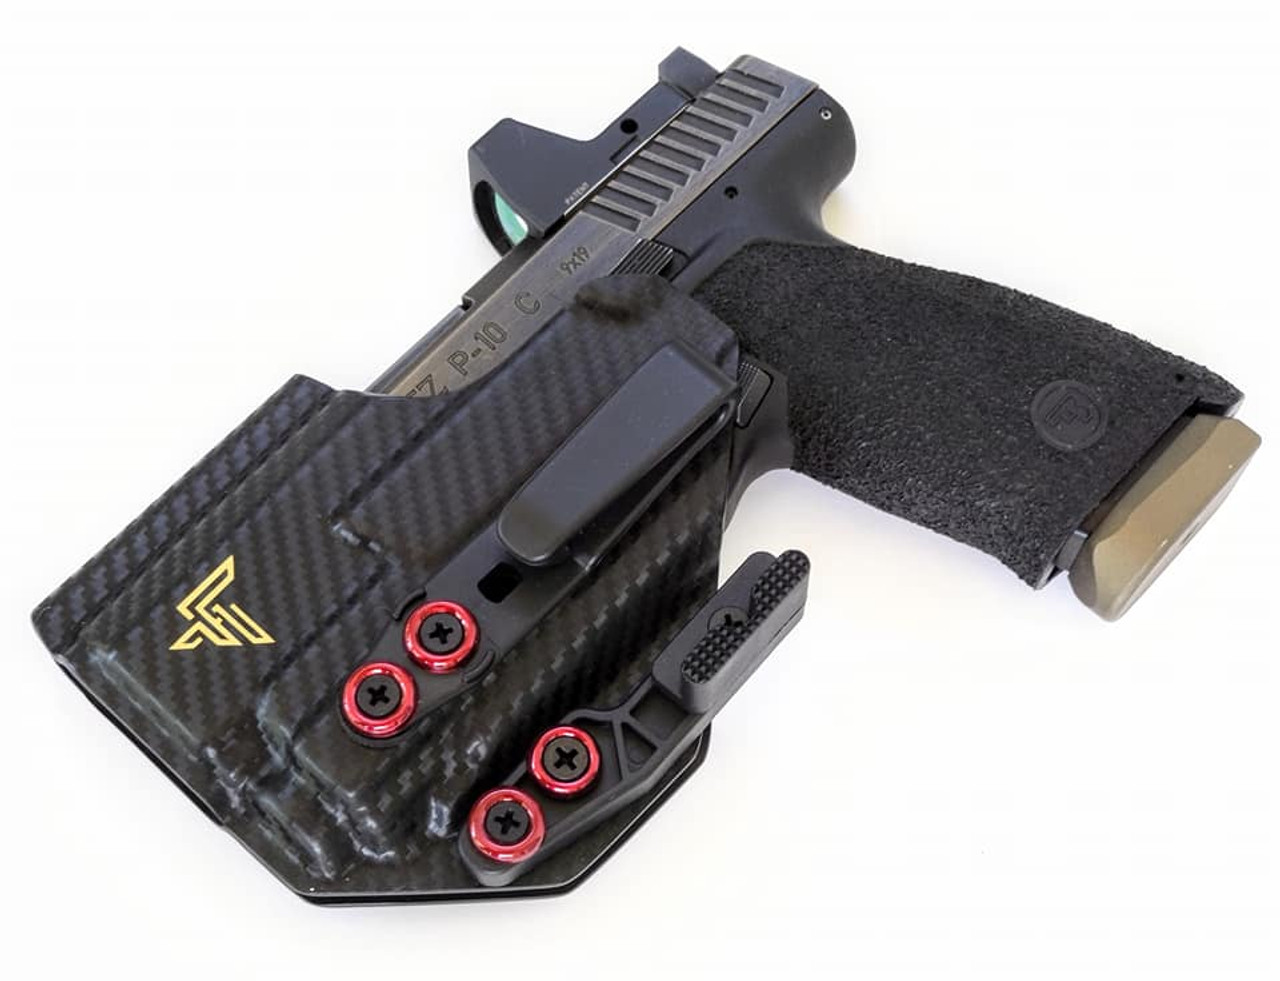 CZ P10c with Streamlight TLR8 Appendix Carry Holster